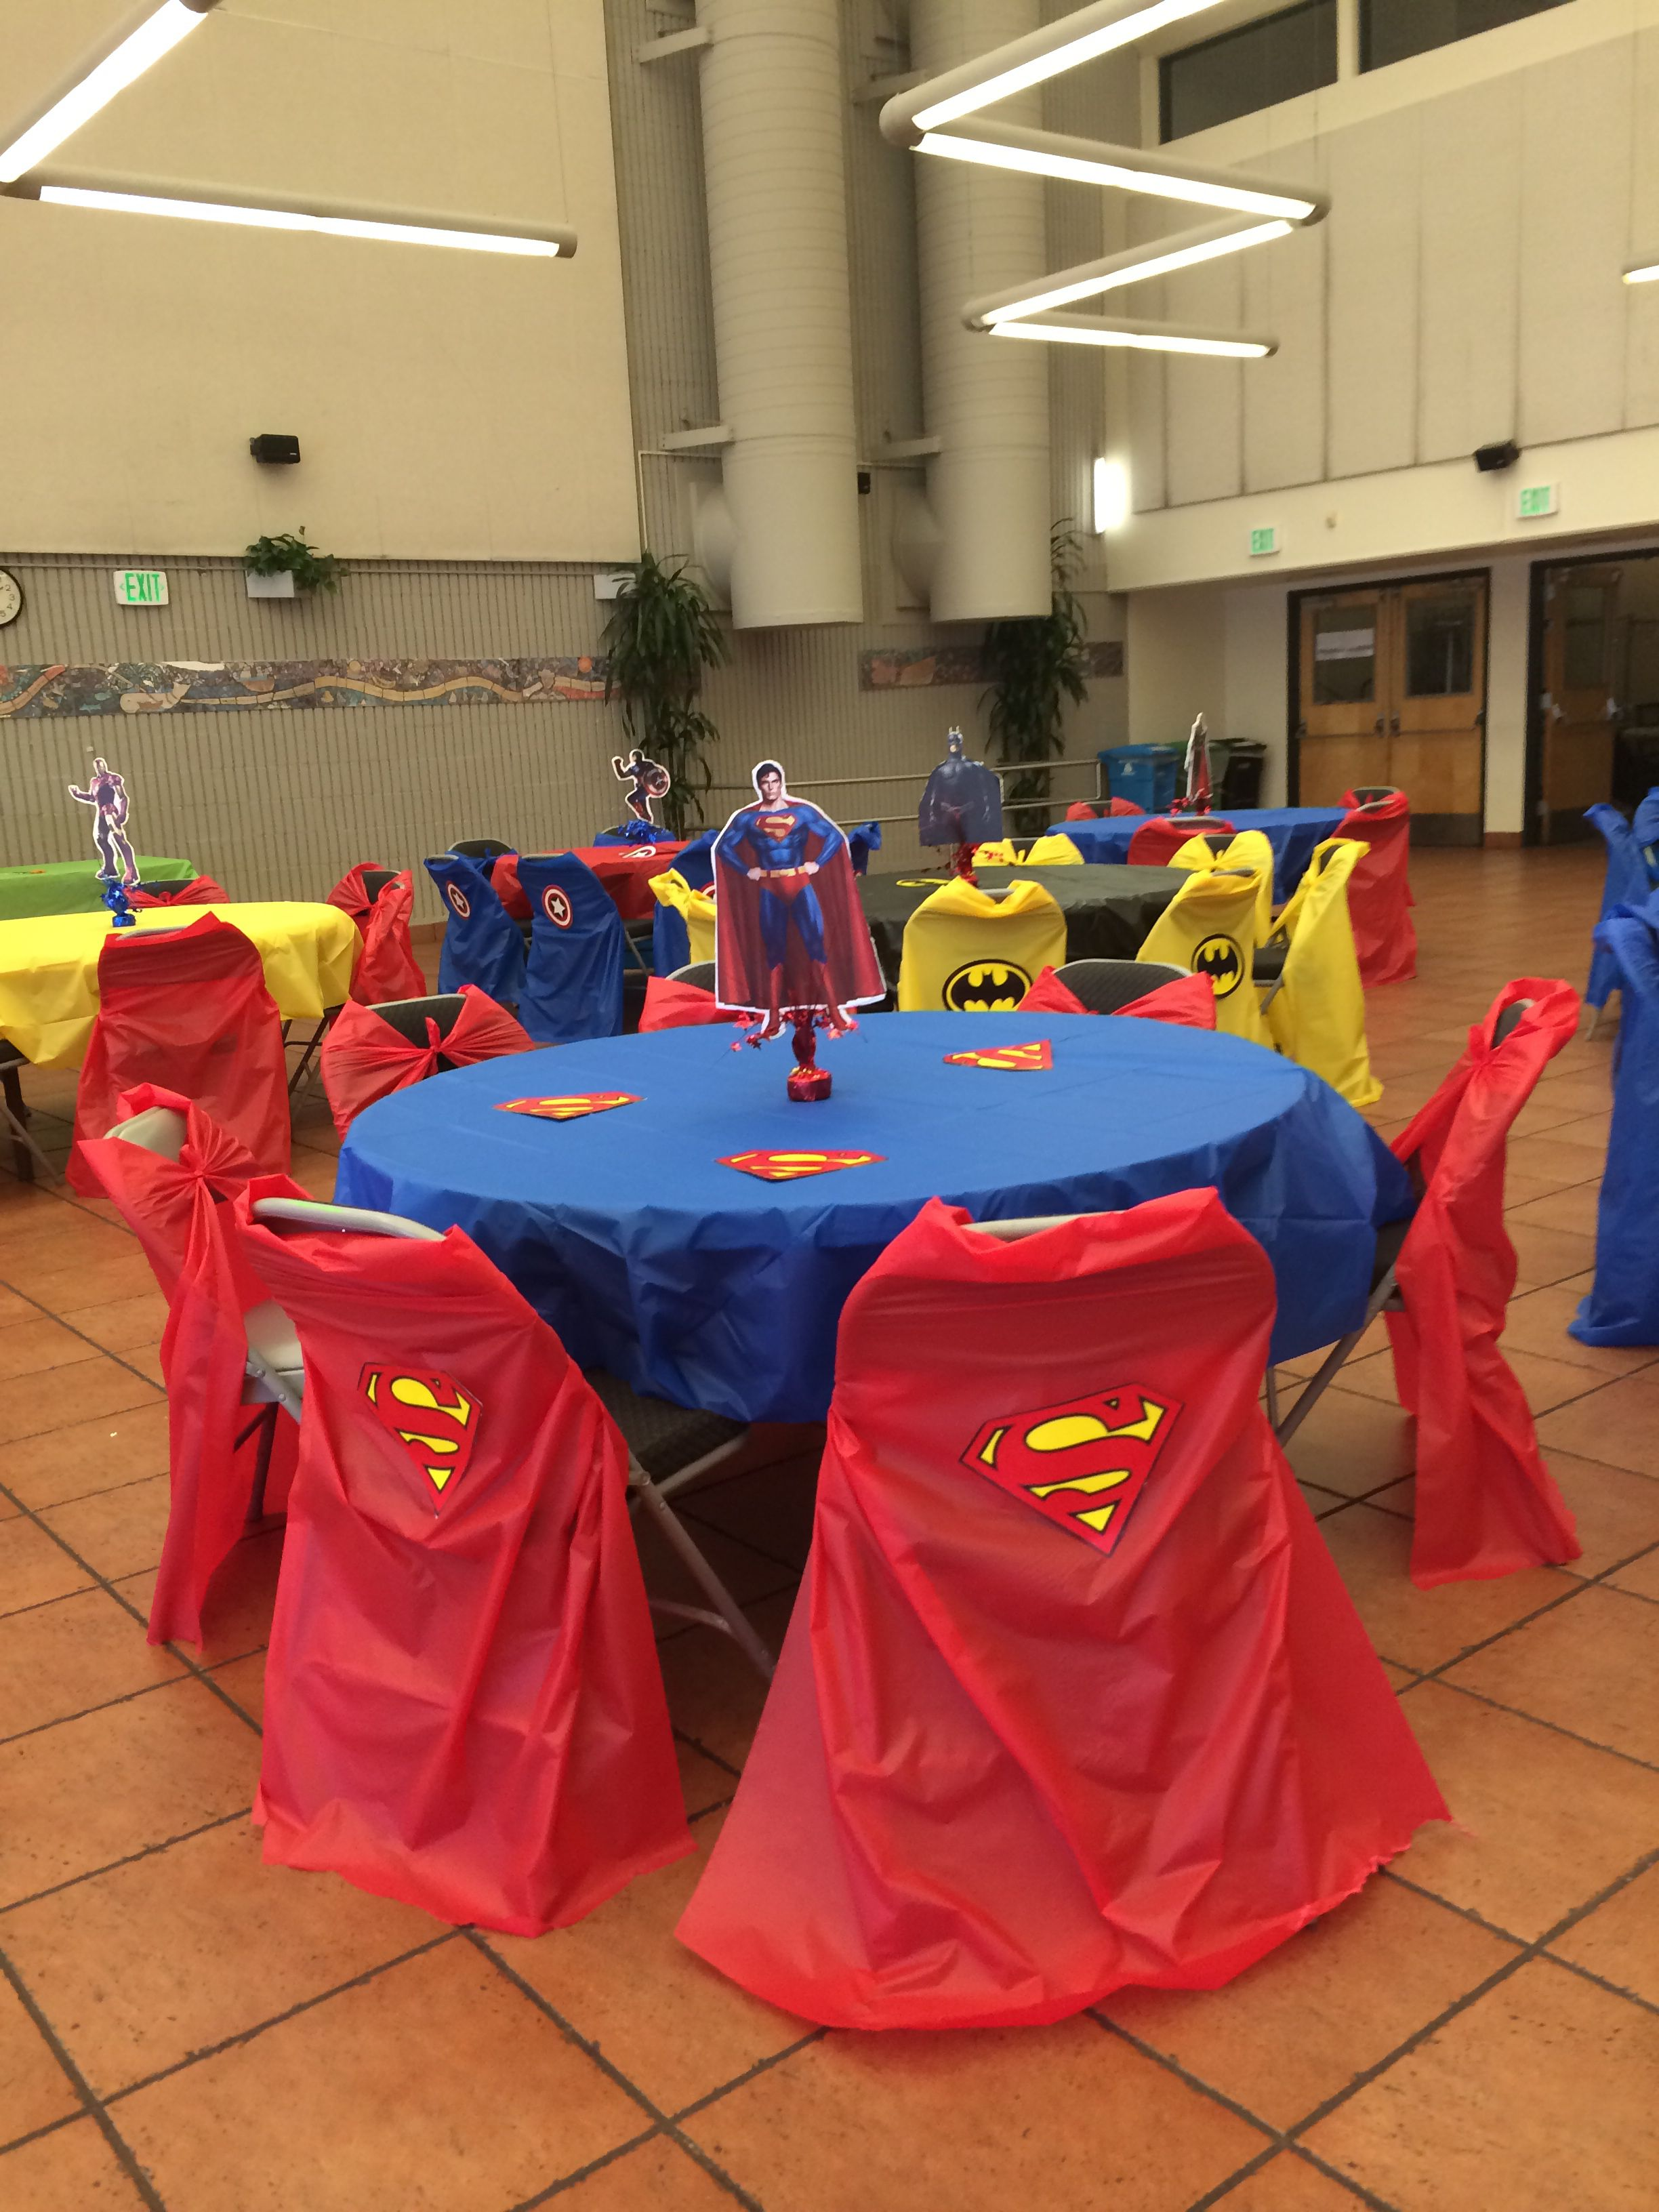 Super Man Table I used plastic covers and made capes for the